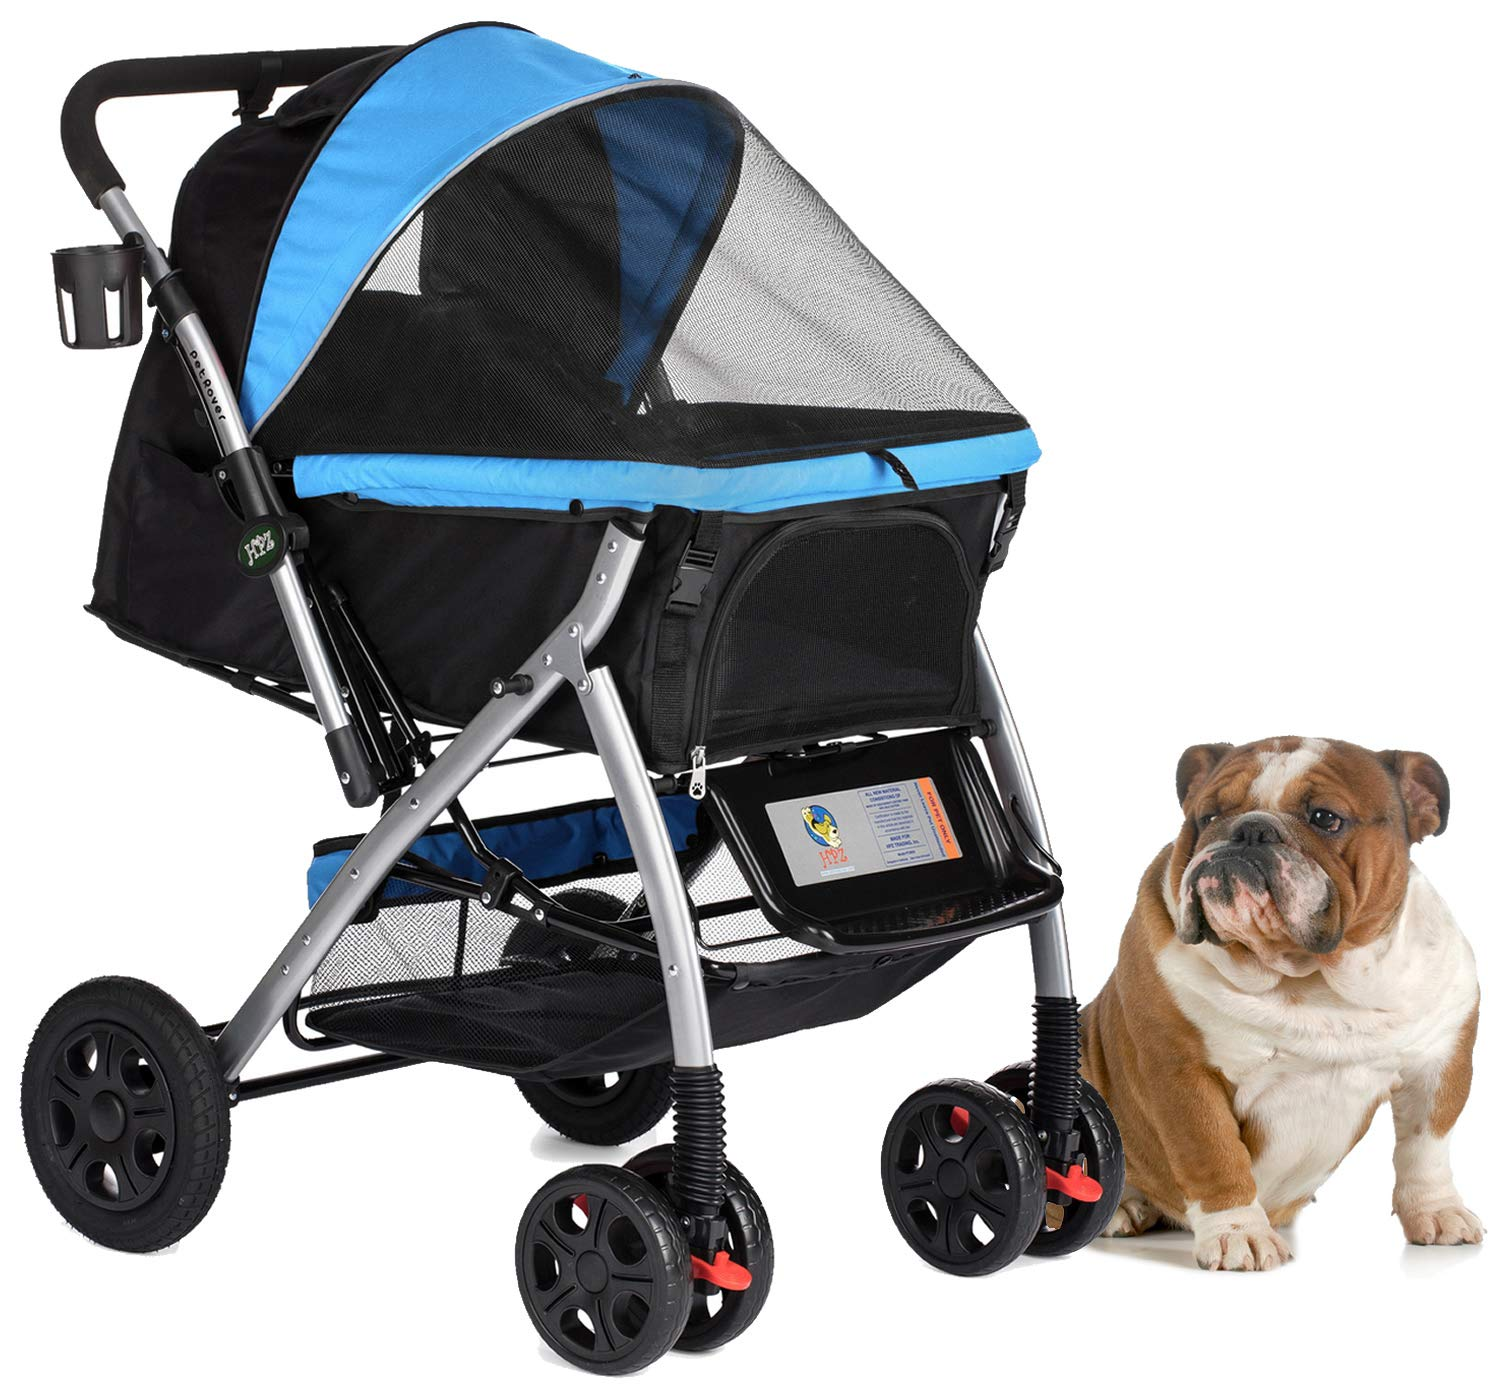 HPZ Pet Rover Premium Heavy Duty Dog/Cat/Pet Stroller Travel Carriage with Convertible Compartment/Zipperless Entry/Reversible Handlebar/Pump-Free Rubber Tires for Small, Medium, Large Pets 1